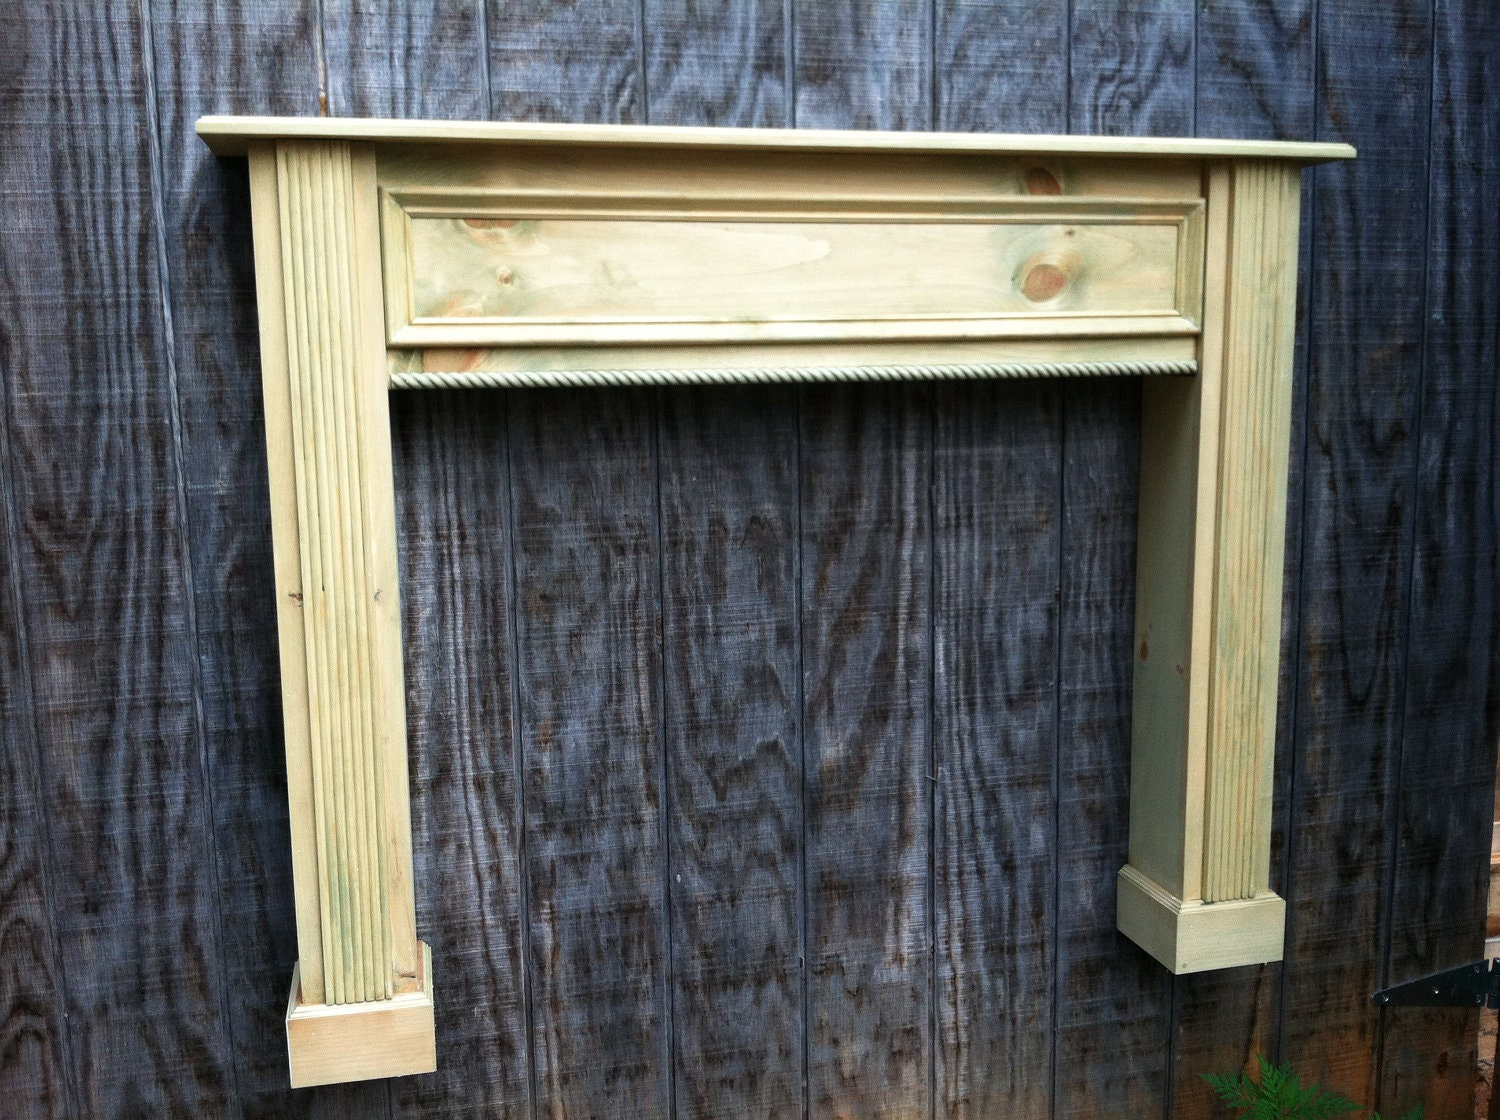 Distressed Fireplace Mantel Pearl Mantels 196 48 60 Cumberland 48 Wood Fireplace